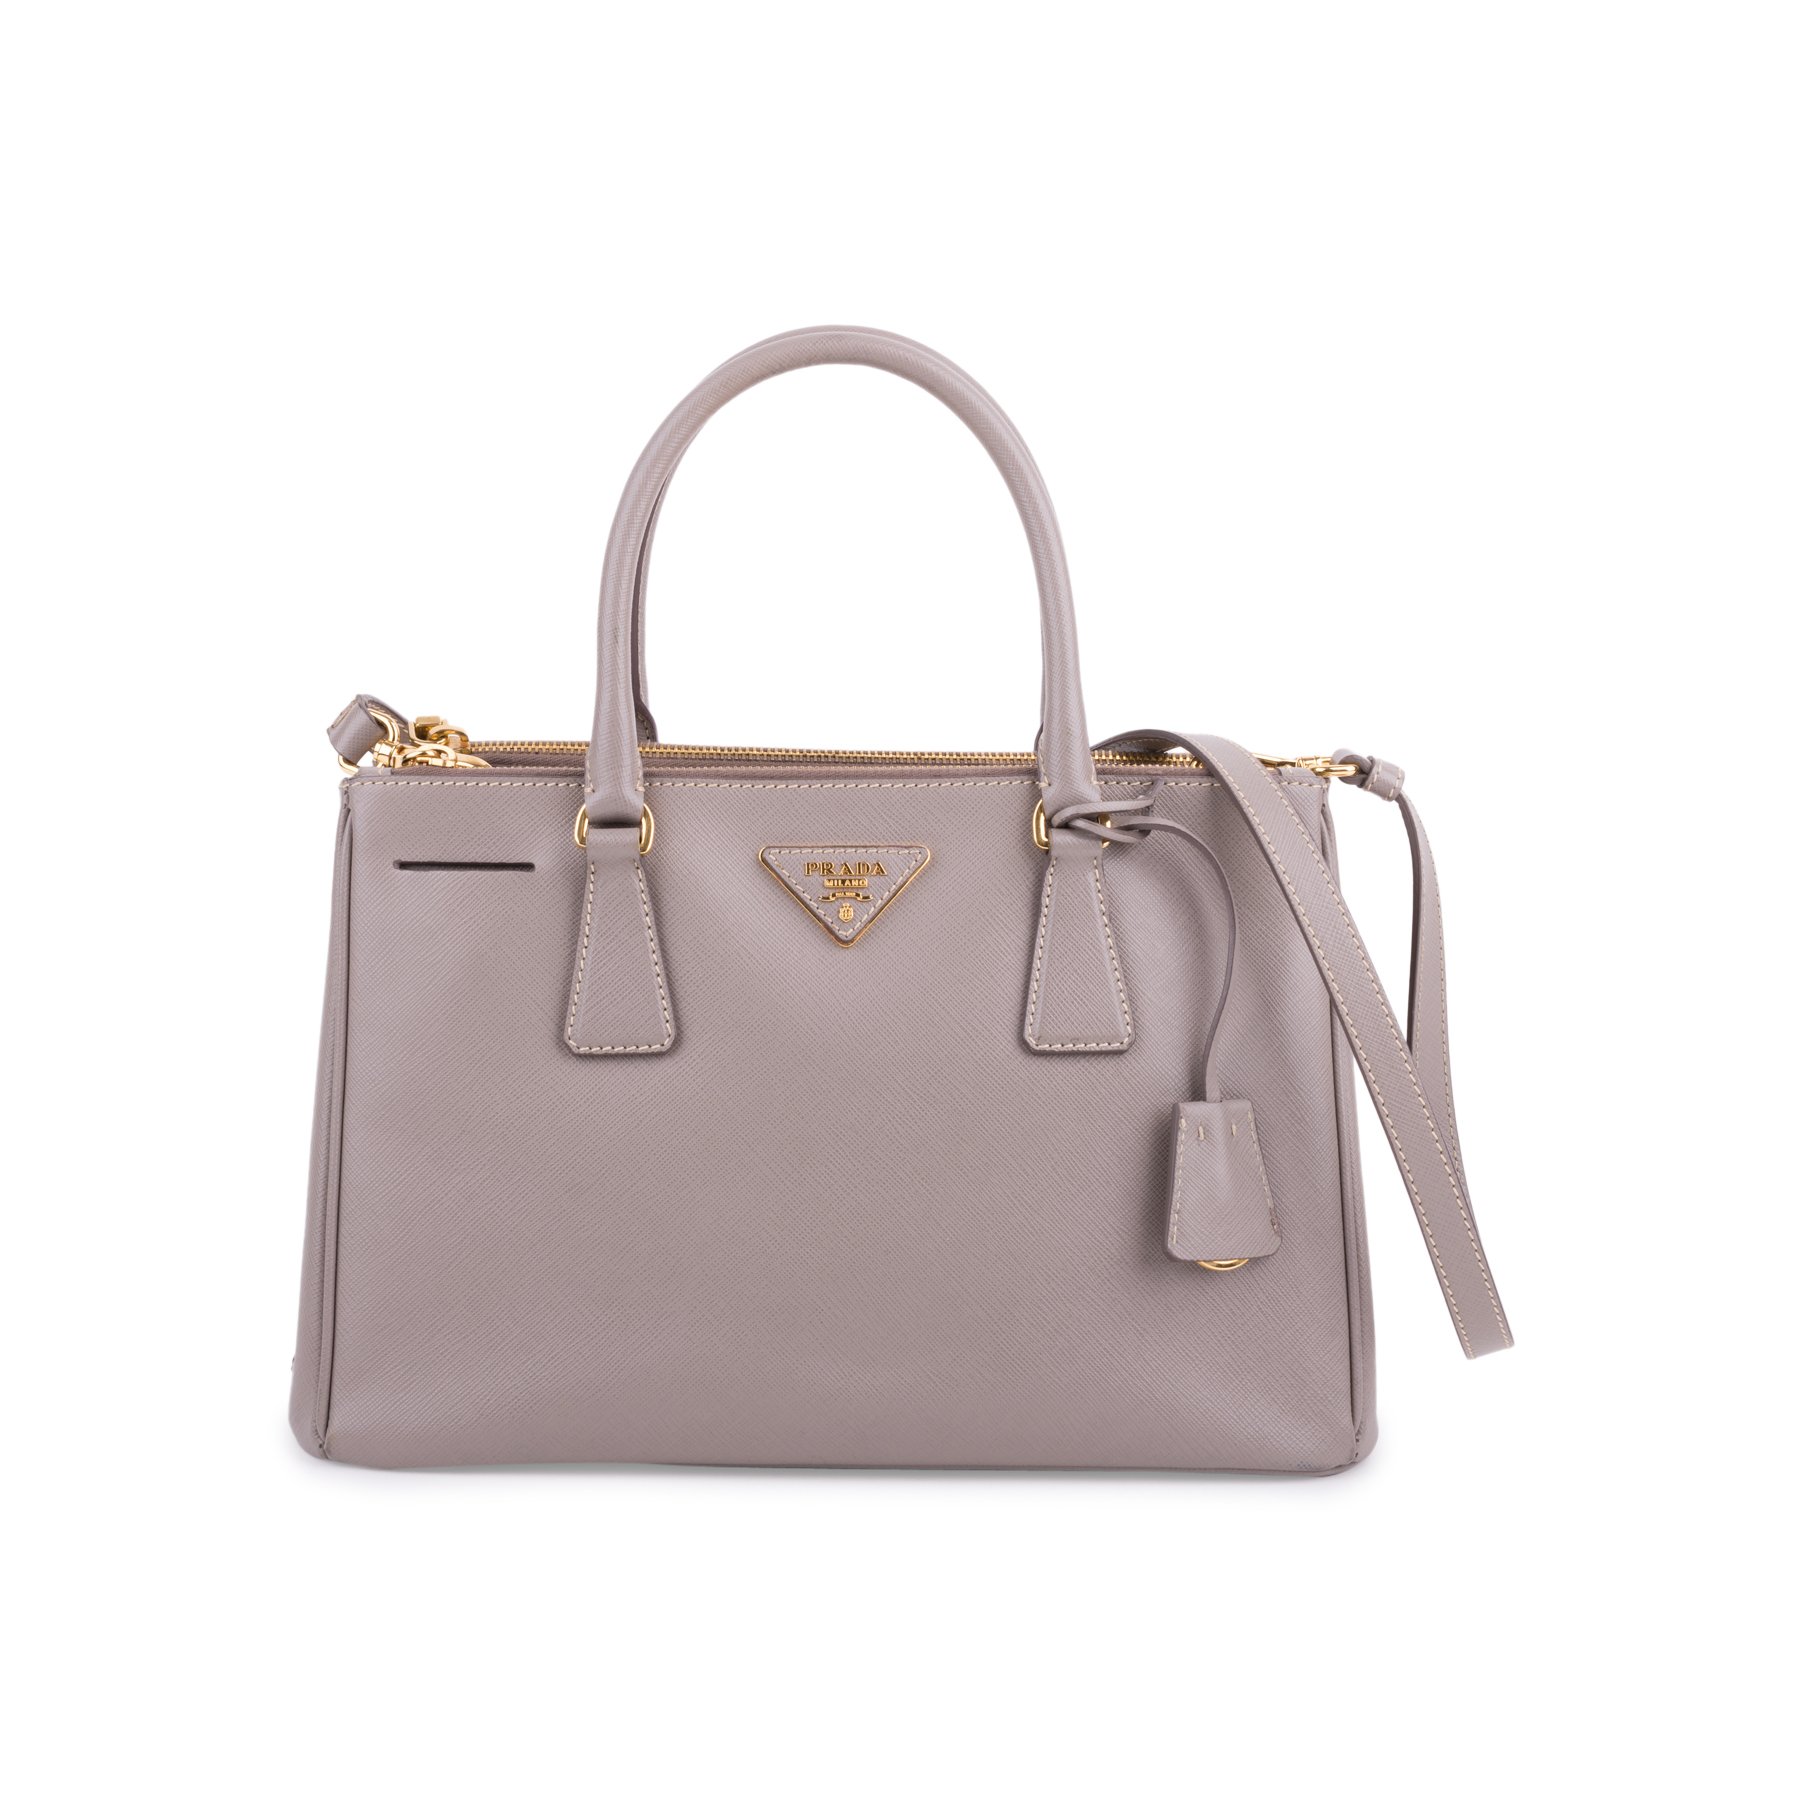 18373c39eb5a Authentic Second Hand Prada Saffiano Lux Small Bag (PSS-646-00001) | THE  FIFTH COLLECTION